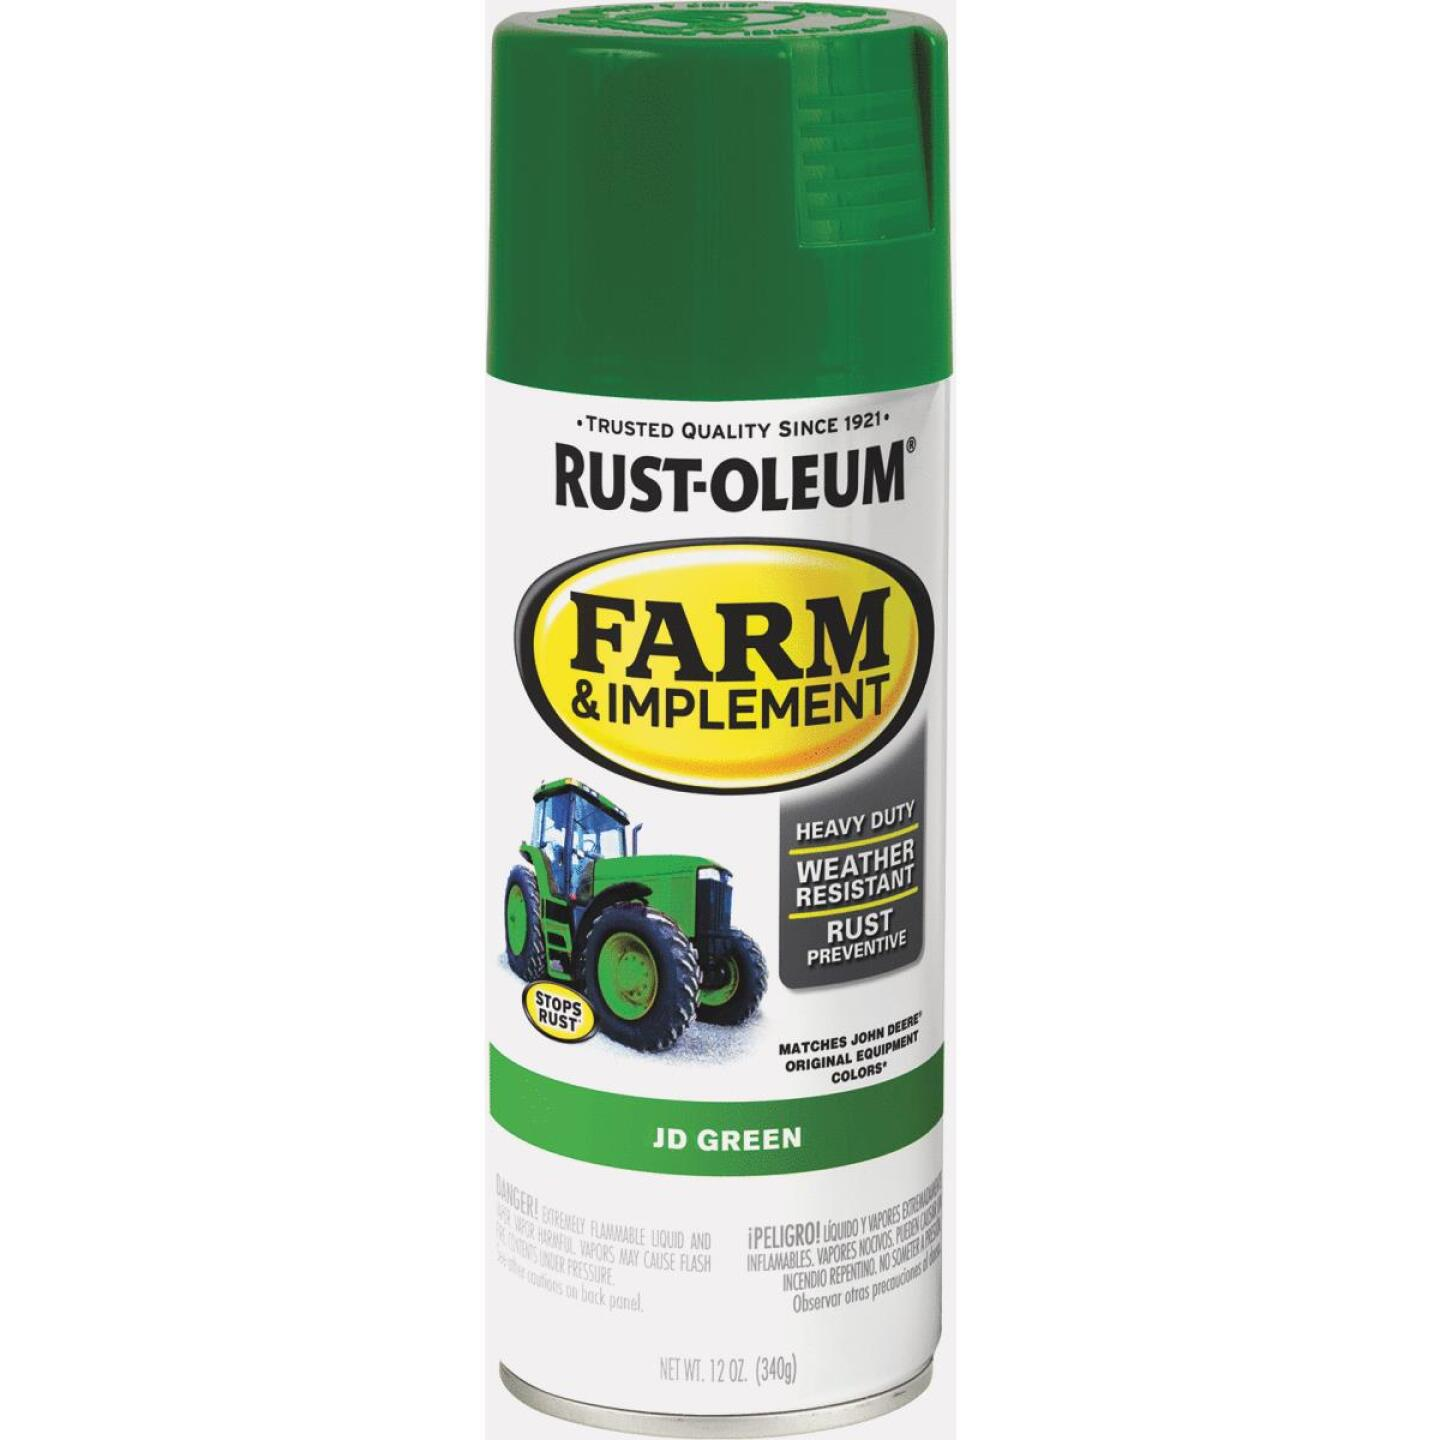 Rust-Oleum 12 Oz. JD Green Farm & Implement Spray Paint Image 1